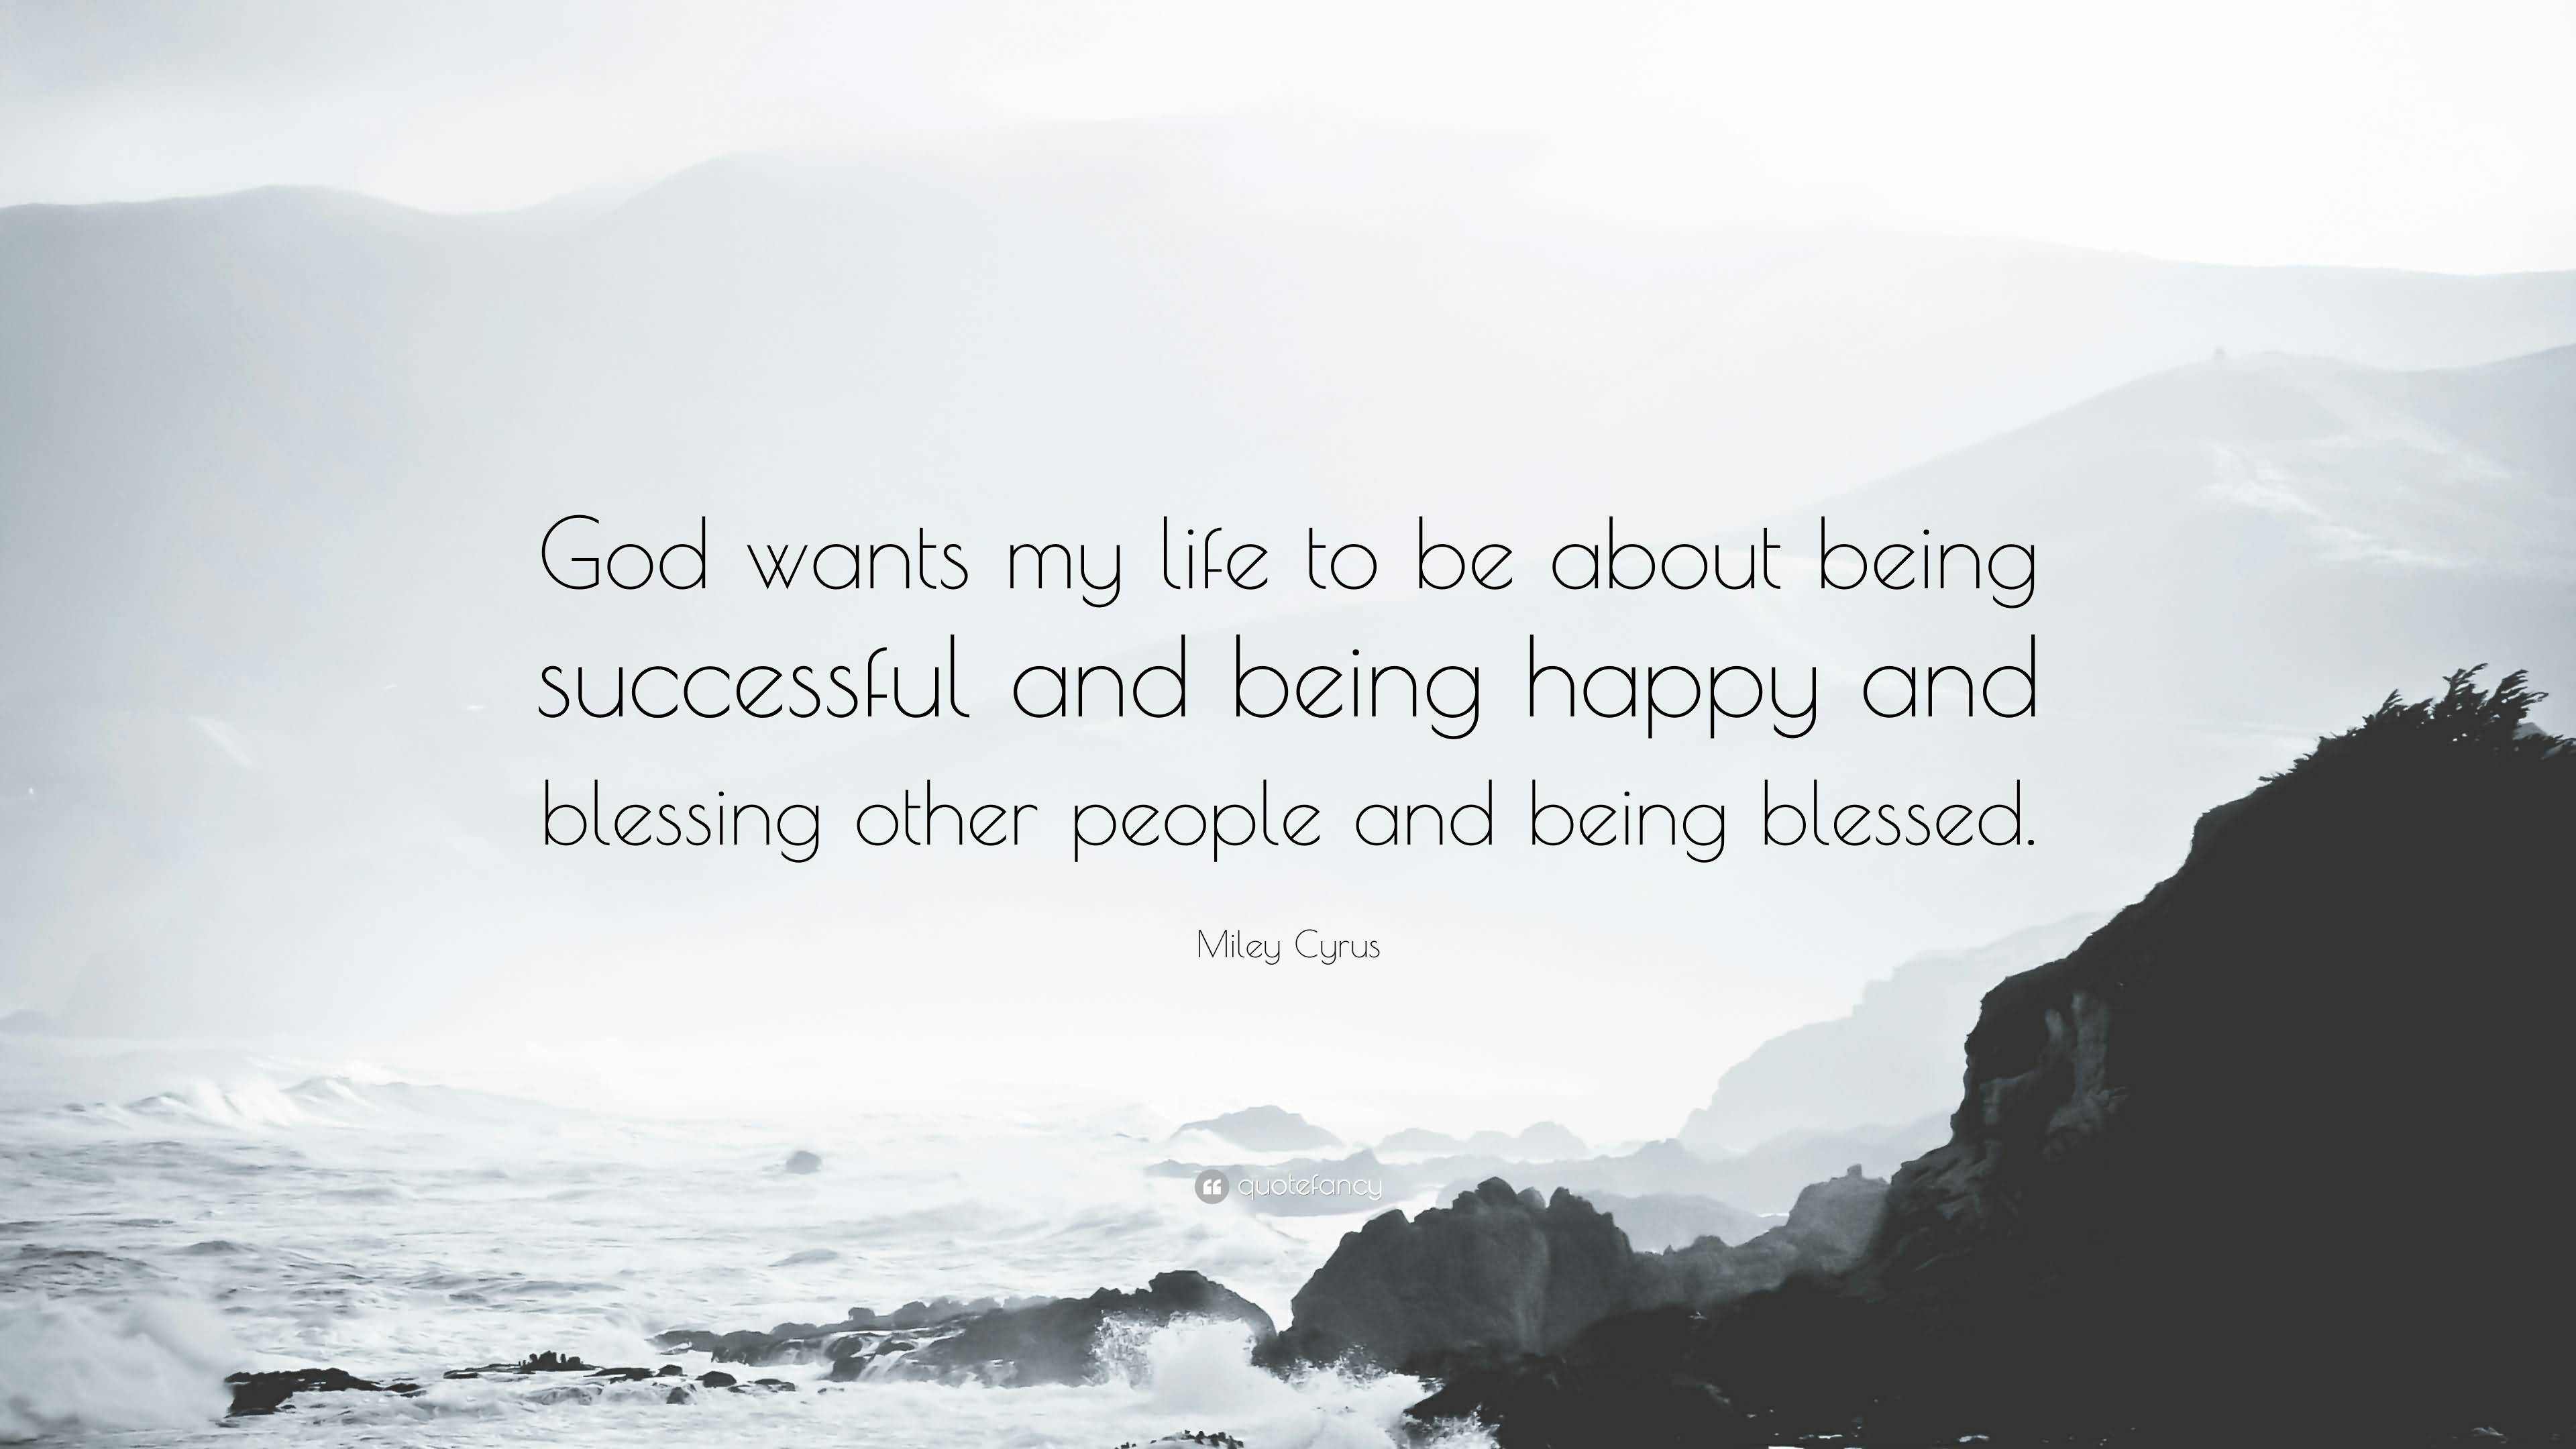 Quotes For A Successful Life Quotes About Being Successful In Life 05  Quotesbae